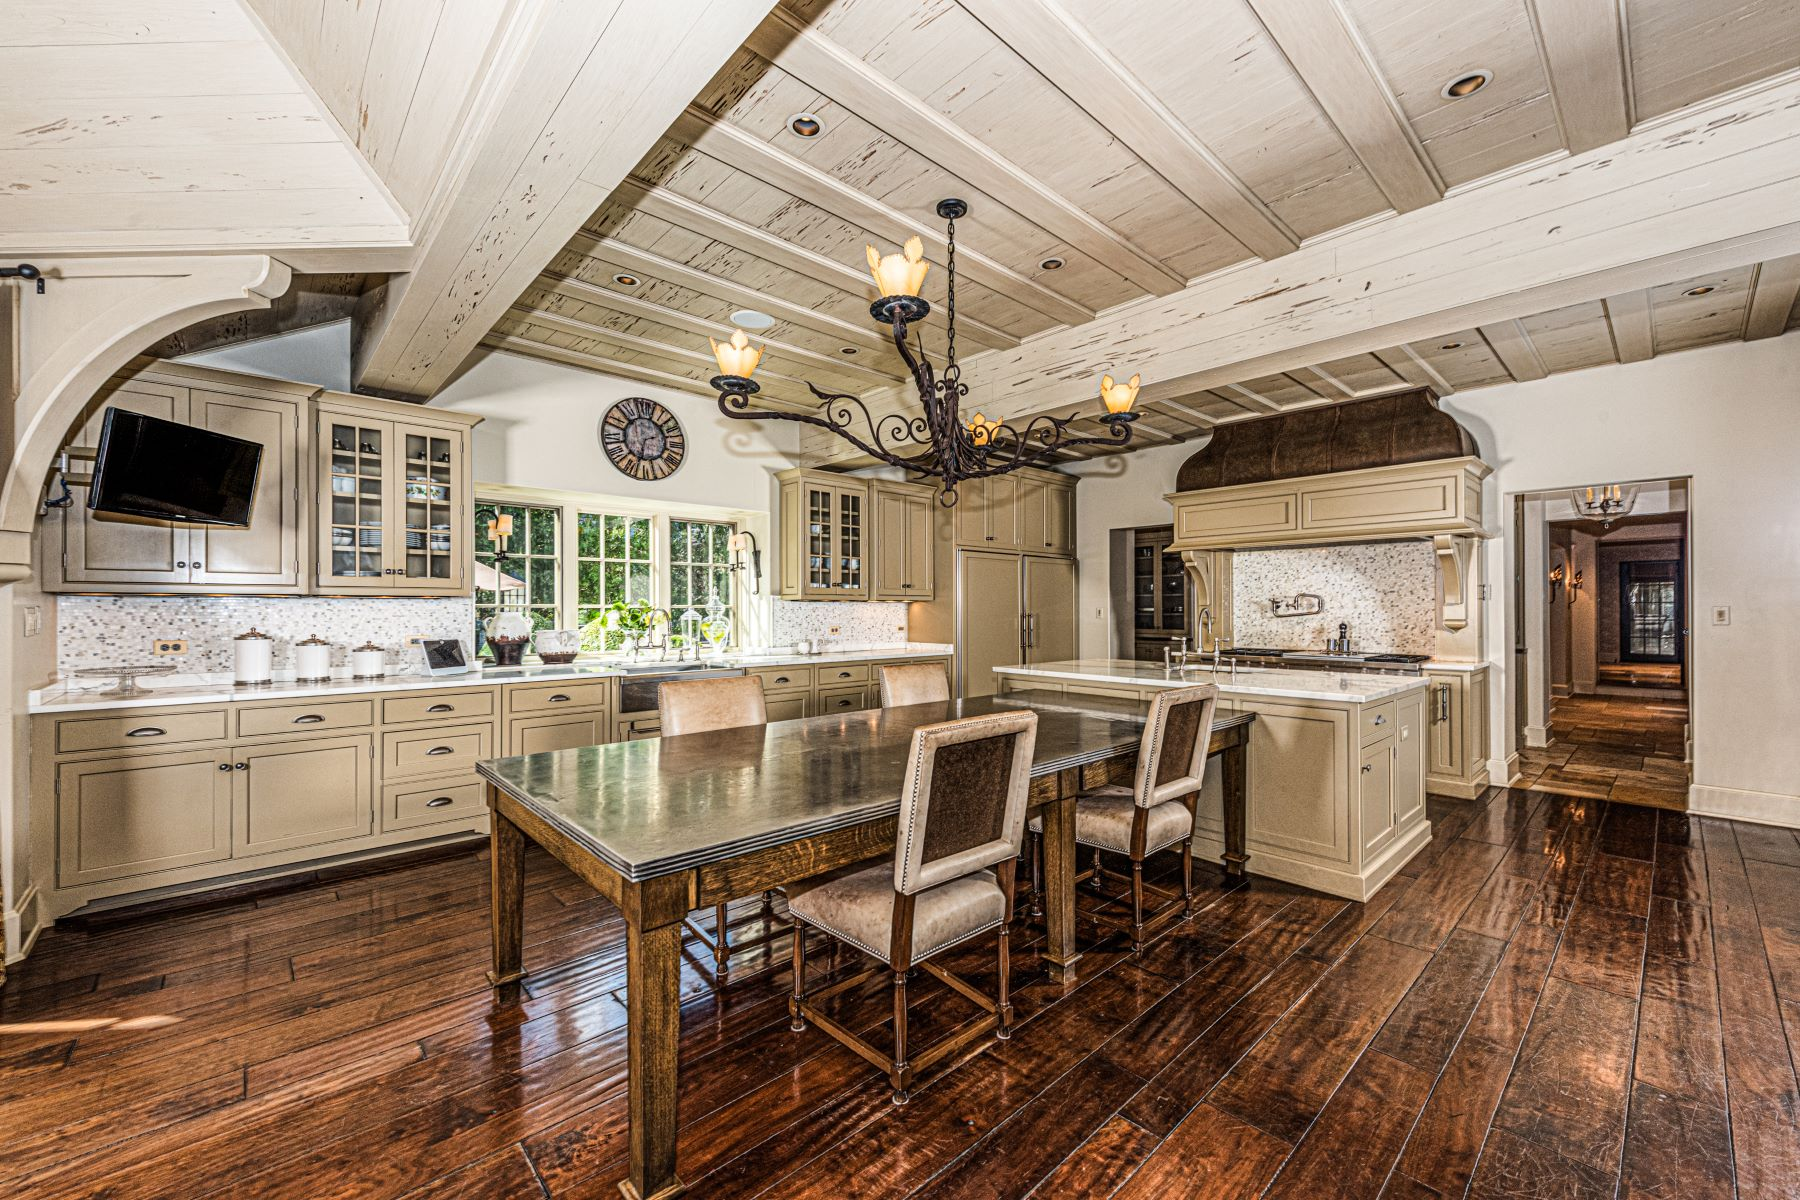 Additional photo for property listing at Versailles Inspired Estate in Prestigious Hinsdale 340 E 8th St Hinsdale - DuPage County, Illinois 60521 United States